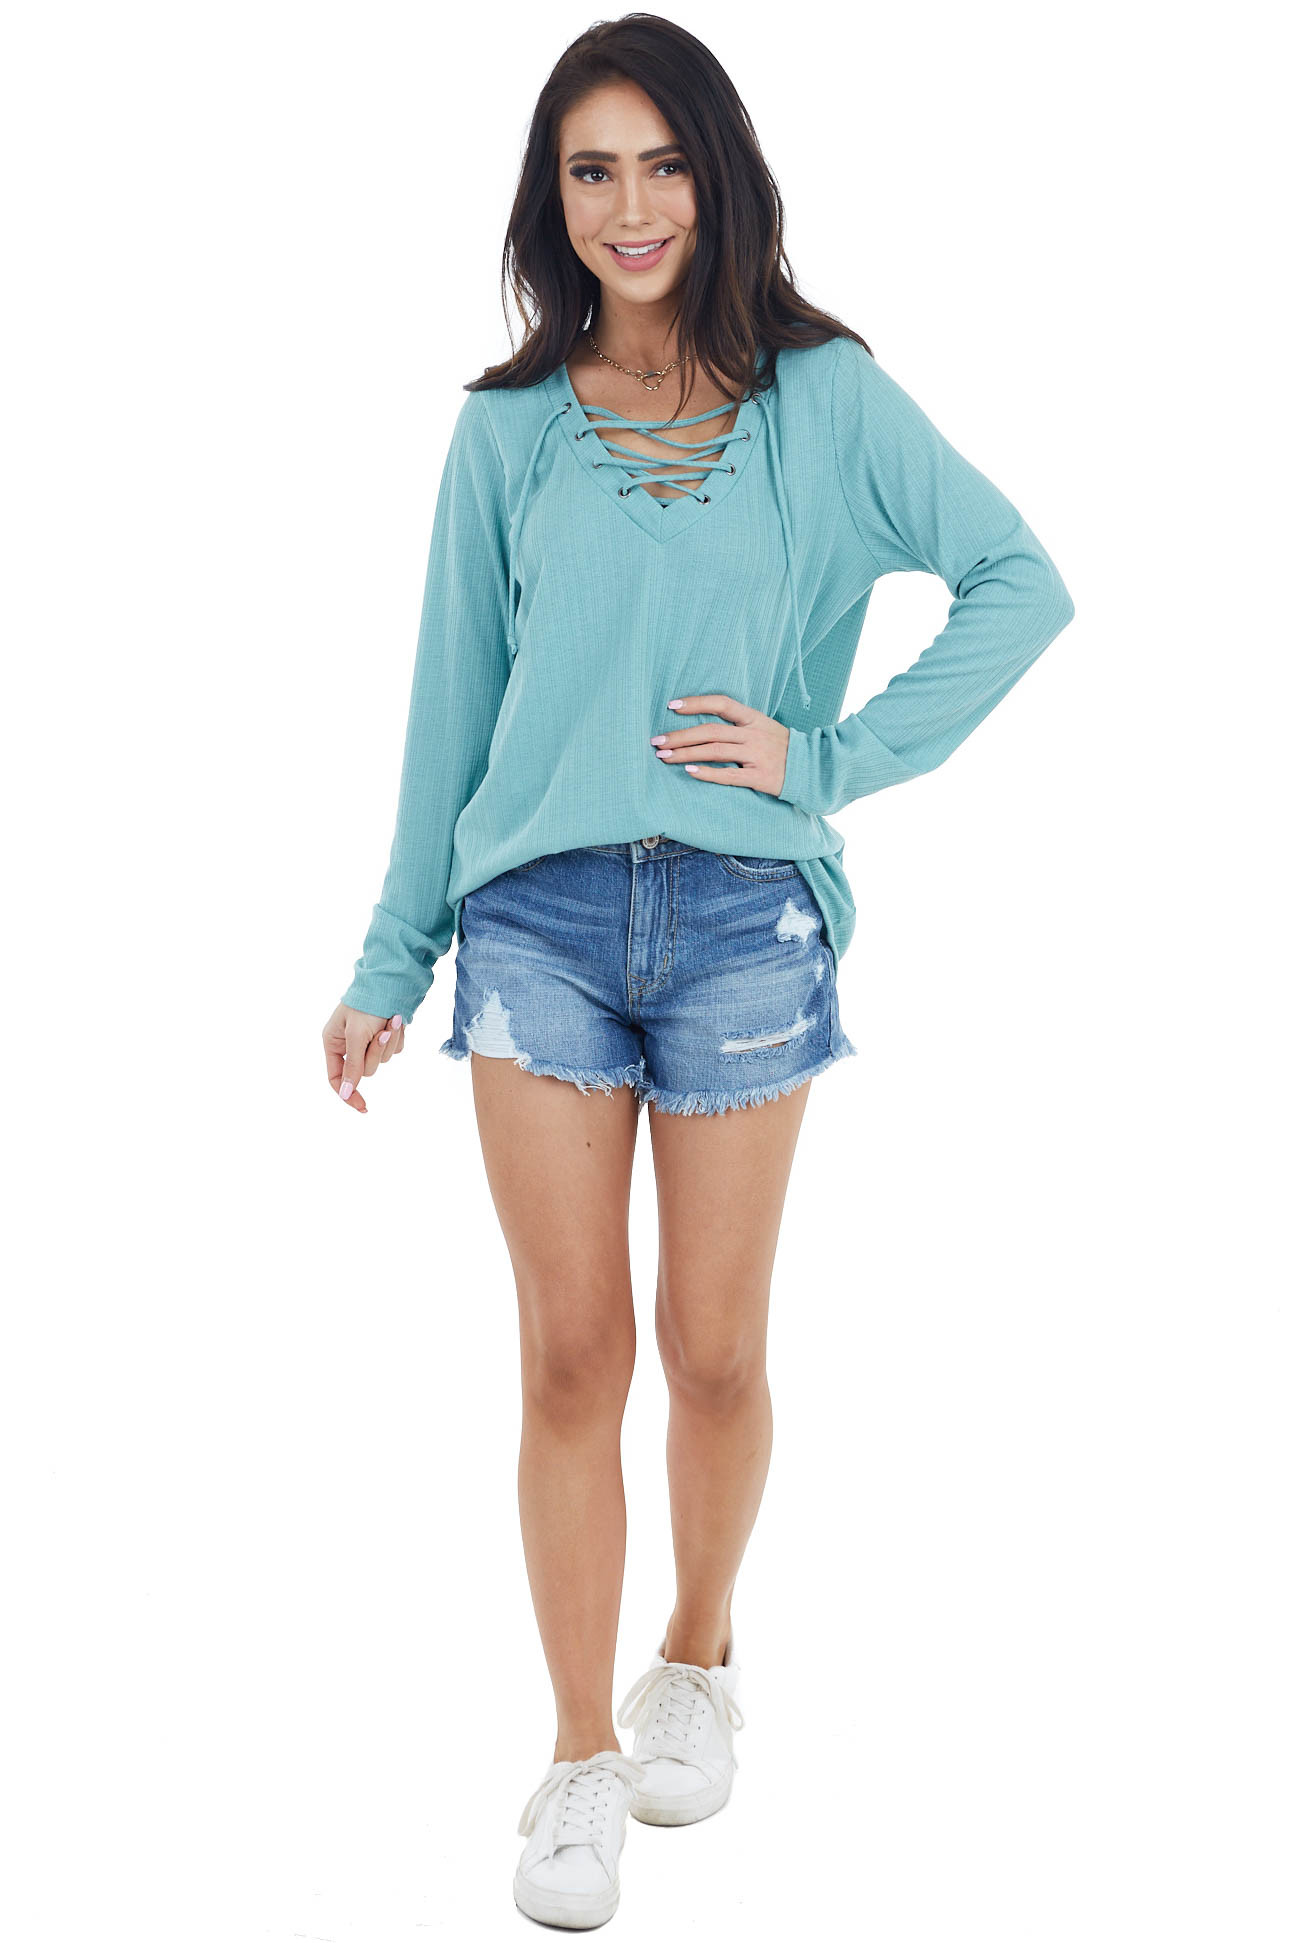 Dusty Aqua Long Sleeve Knit Top with Lace Up Front Detail